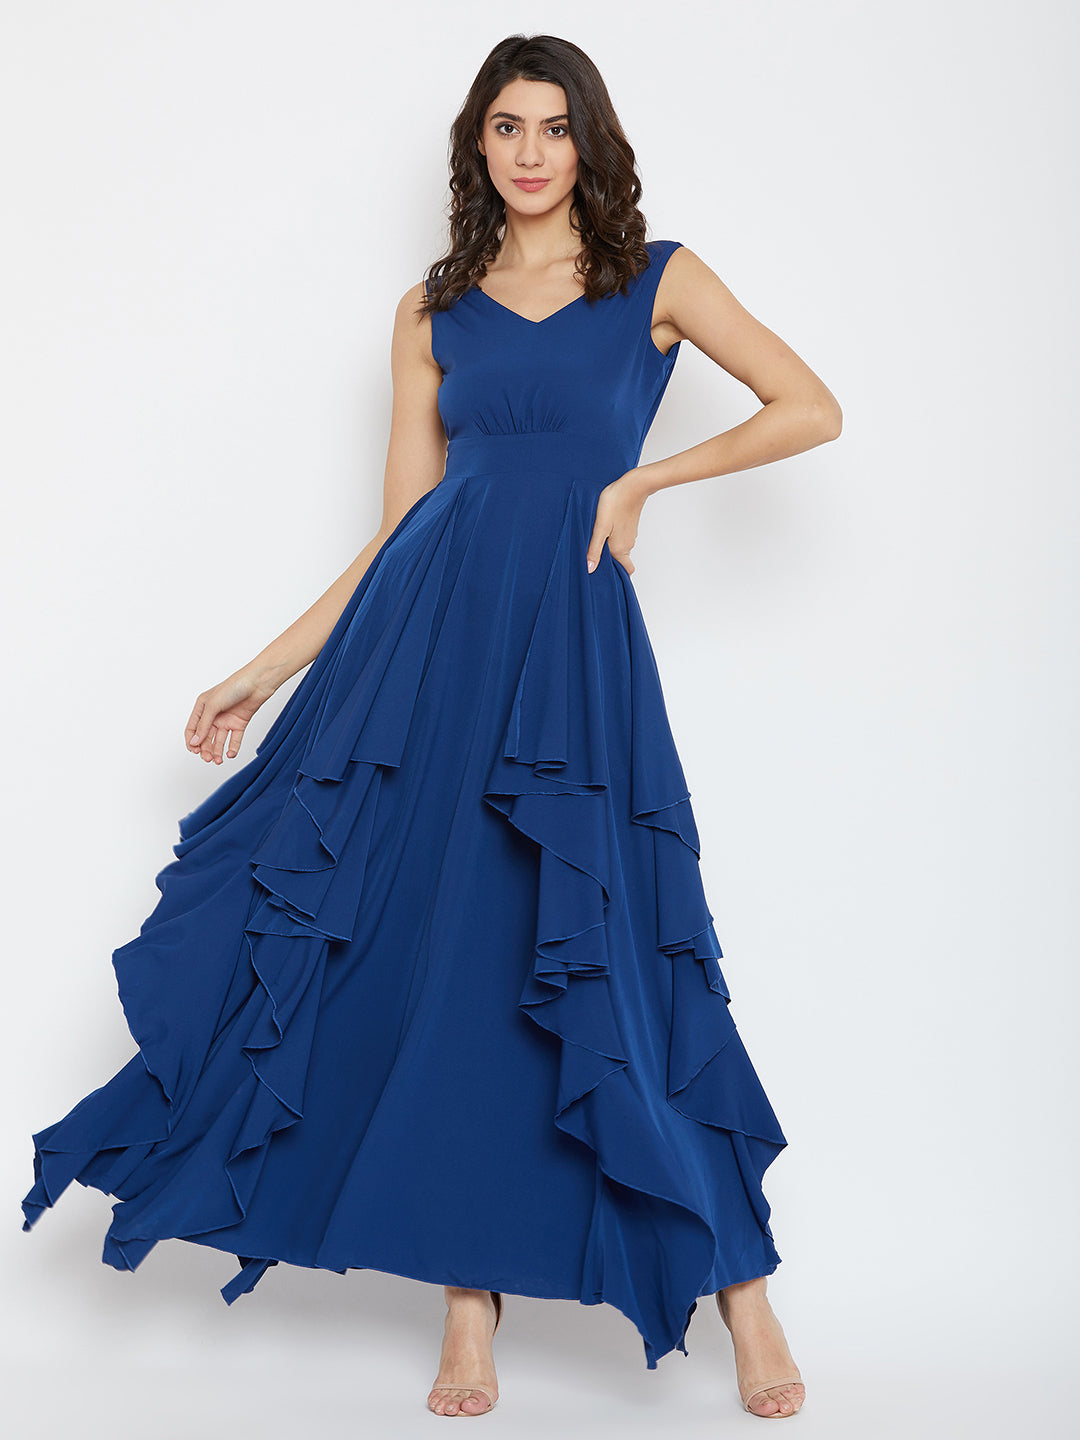 Blue Solid Maxi Dress - Berrylush